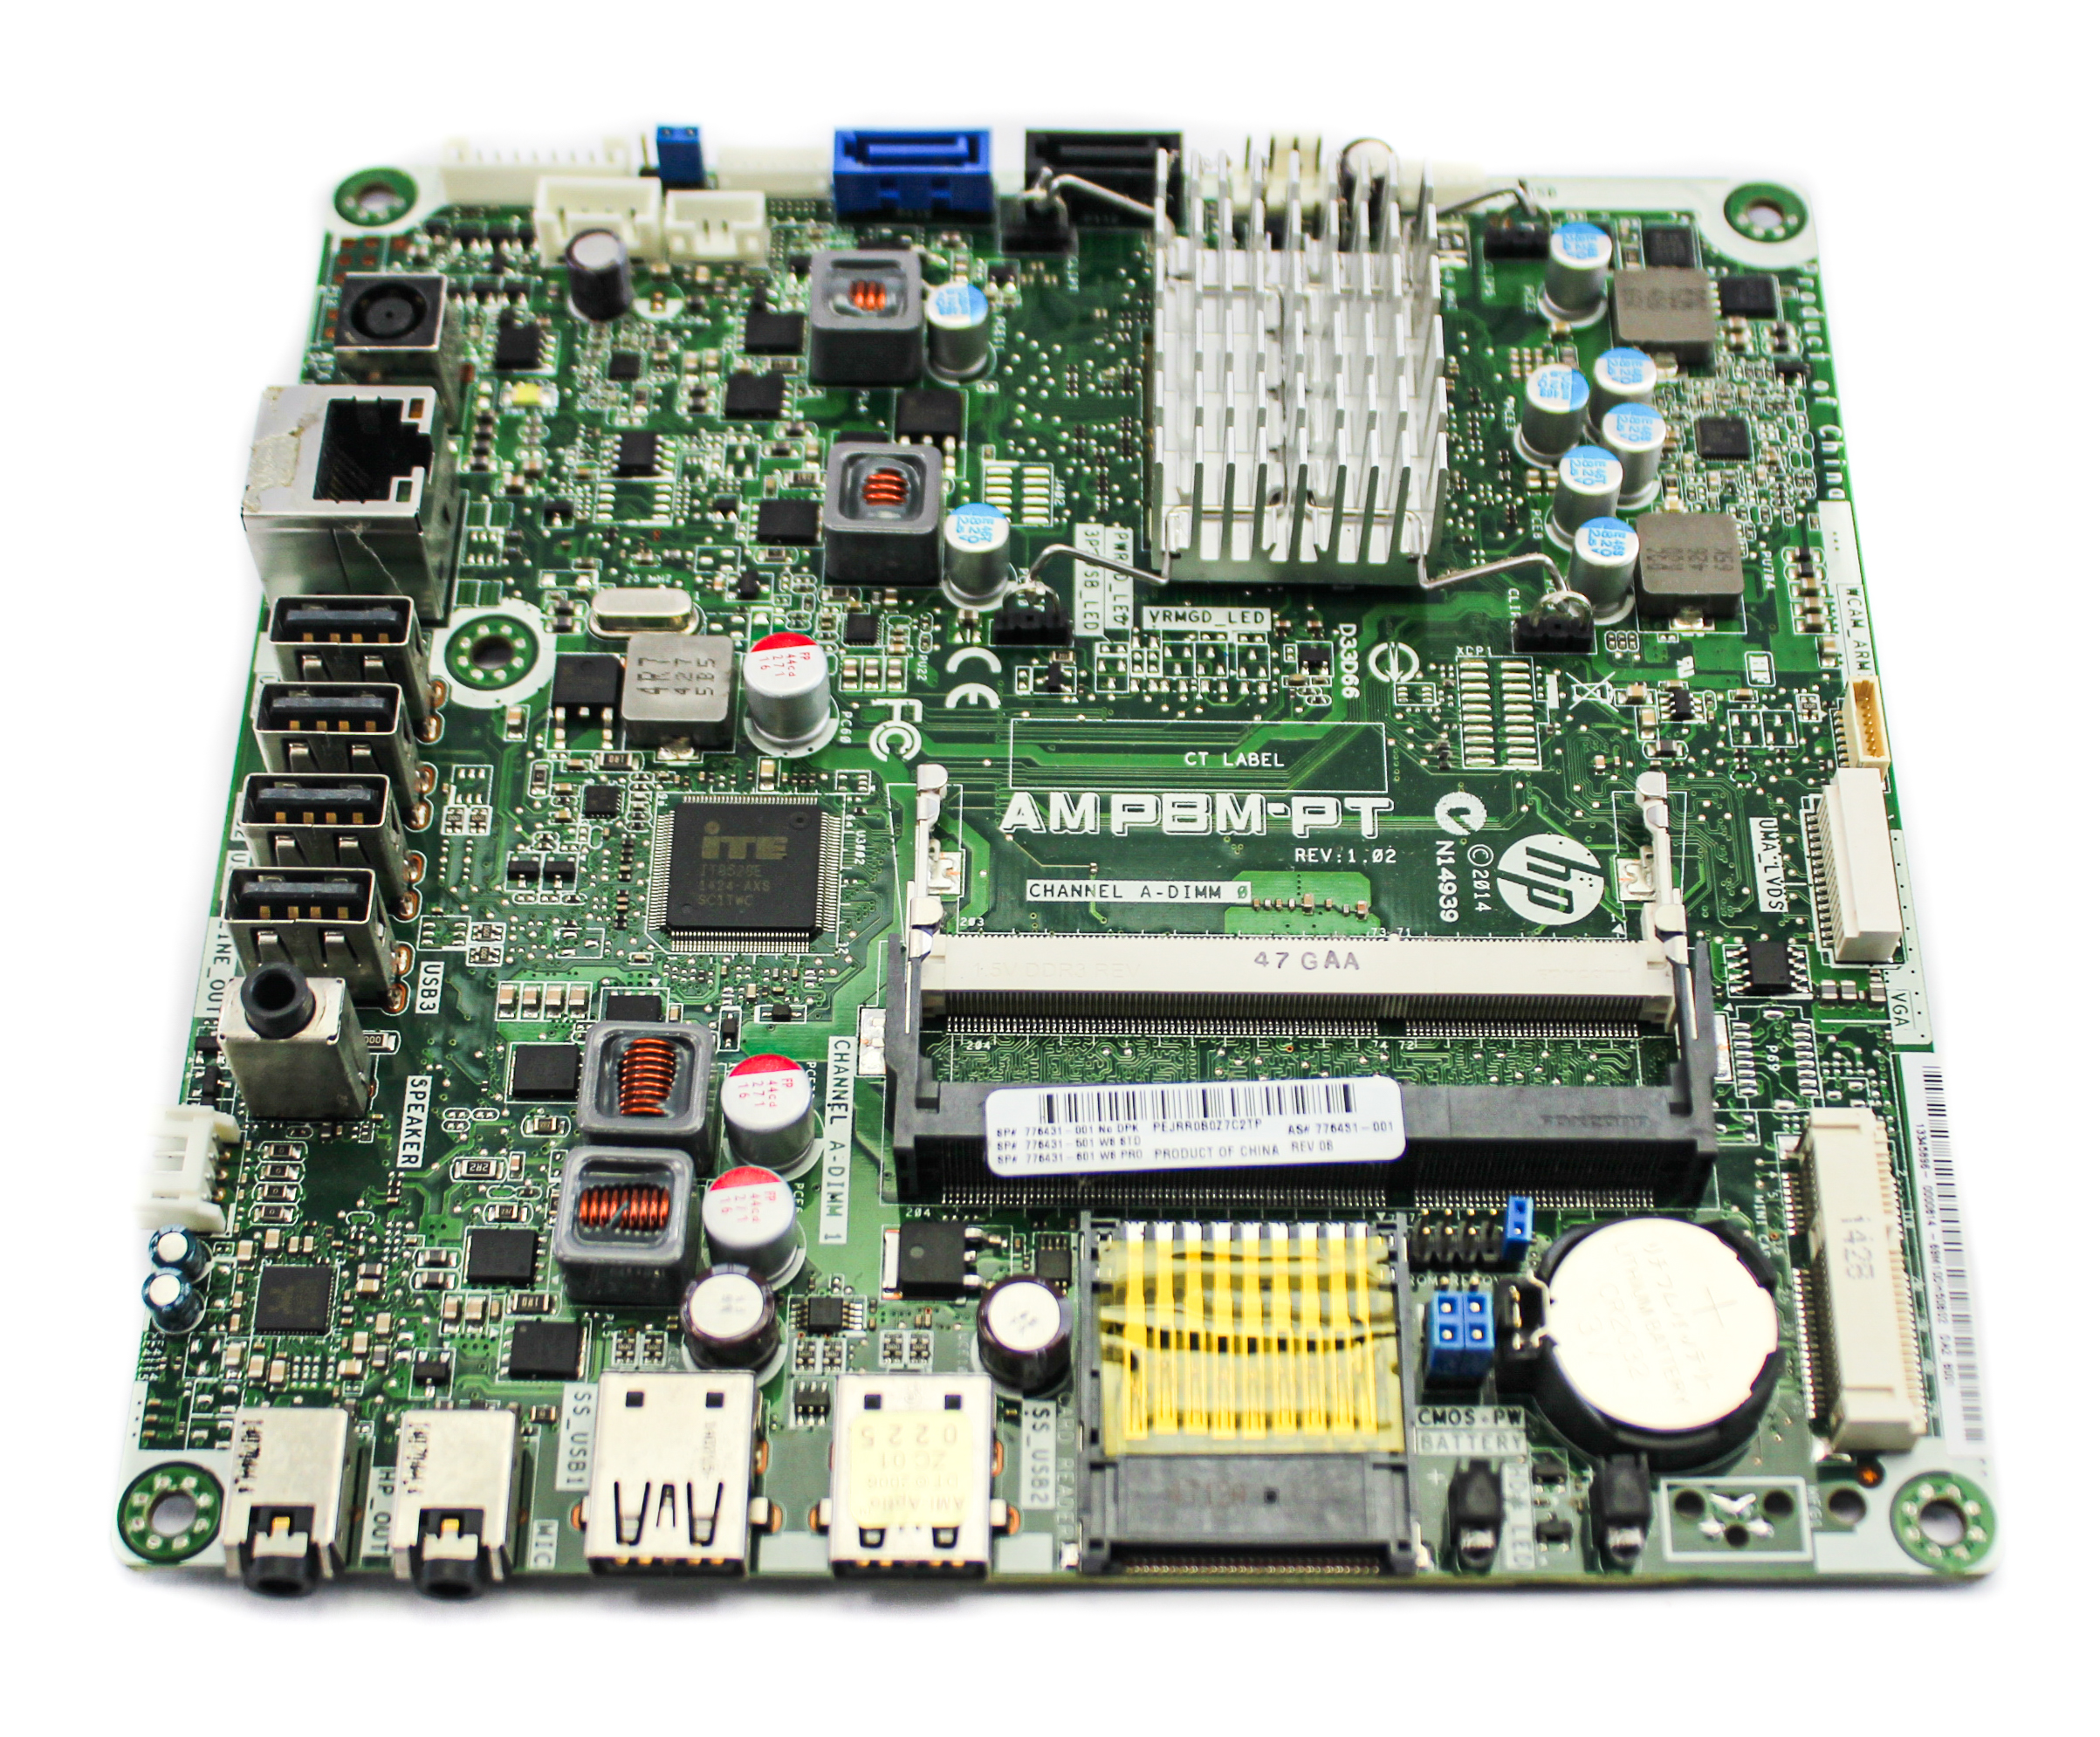 HP 776431-001 All-in-one PC Motherboard AMPBM-PT /w AMD A4-6210